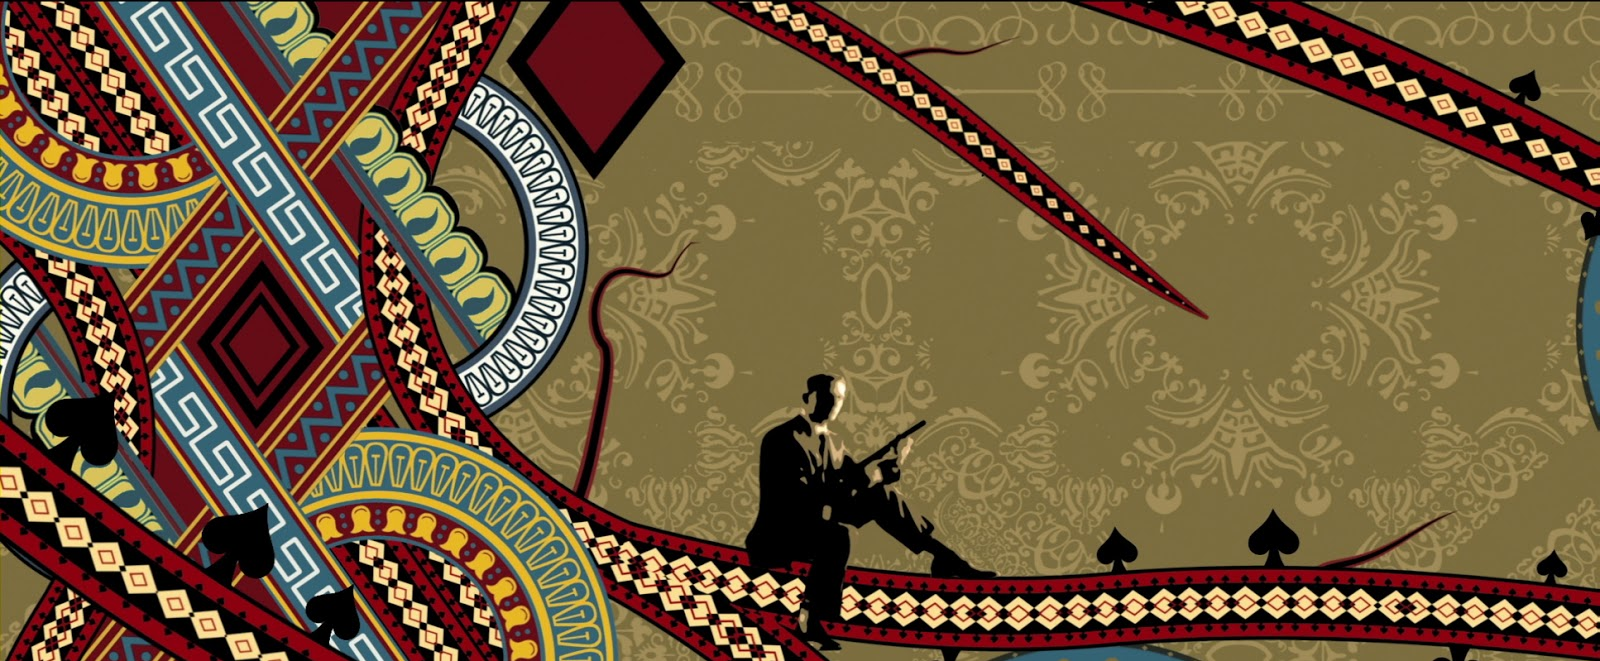 Casino royale opening theme quotes on gambling in life